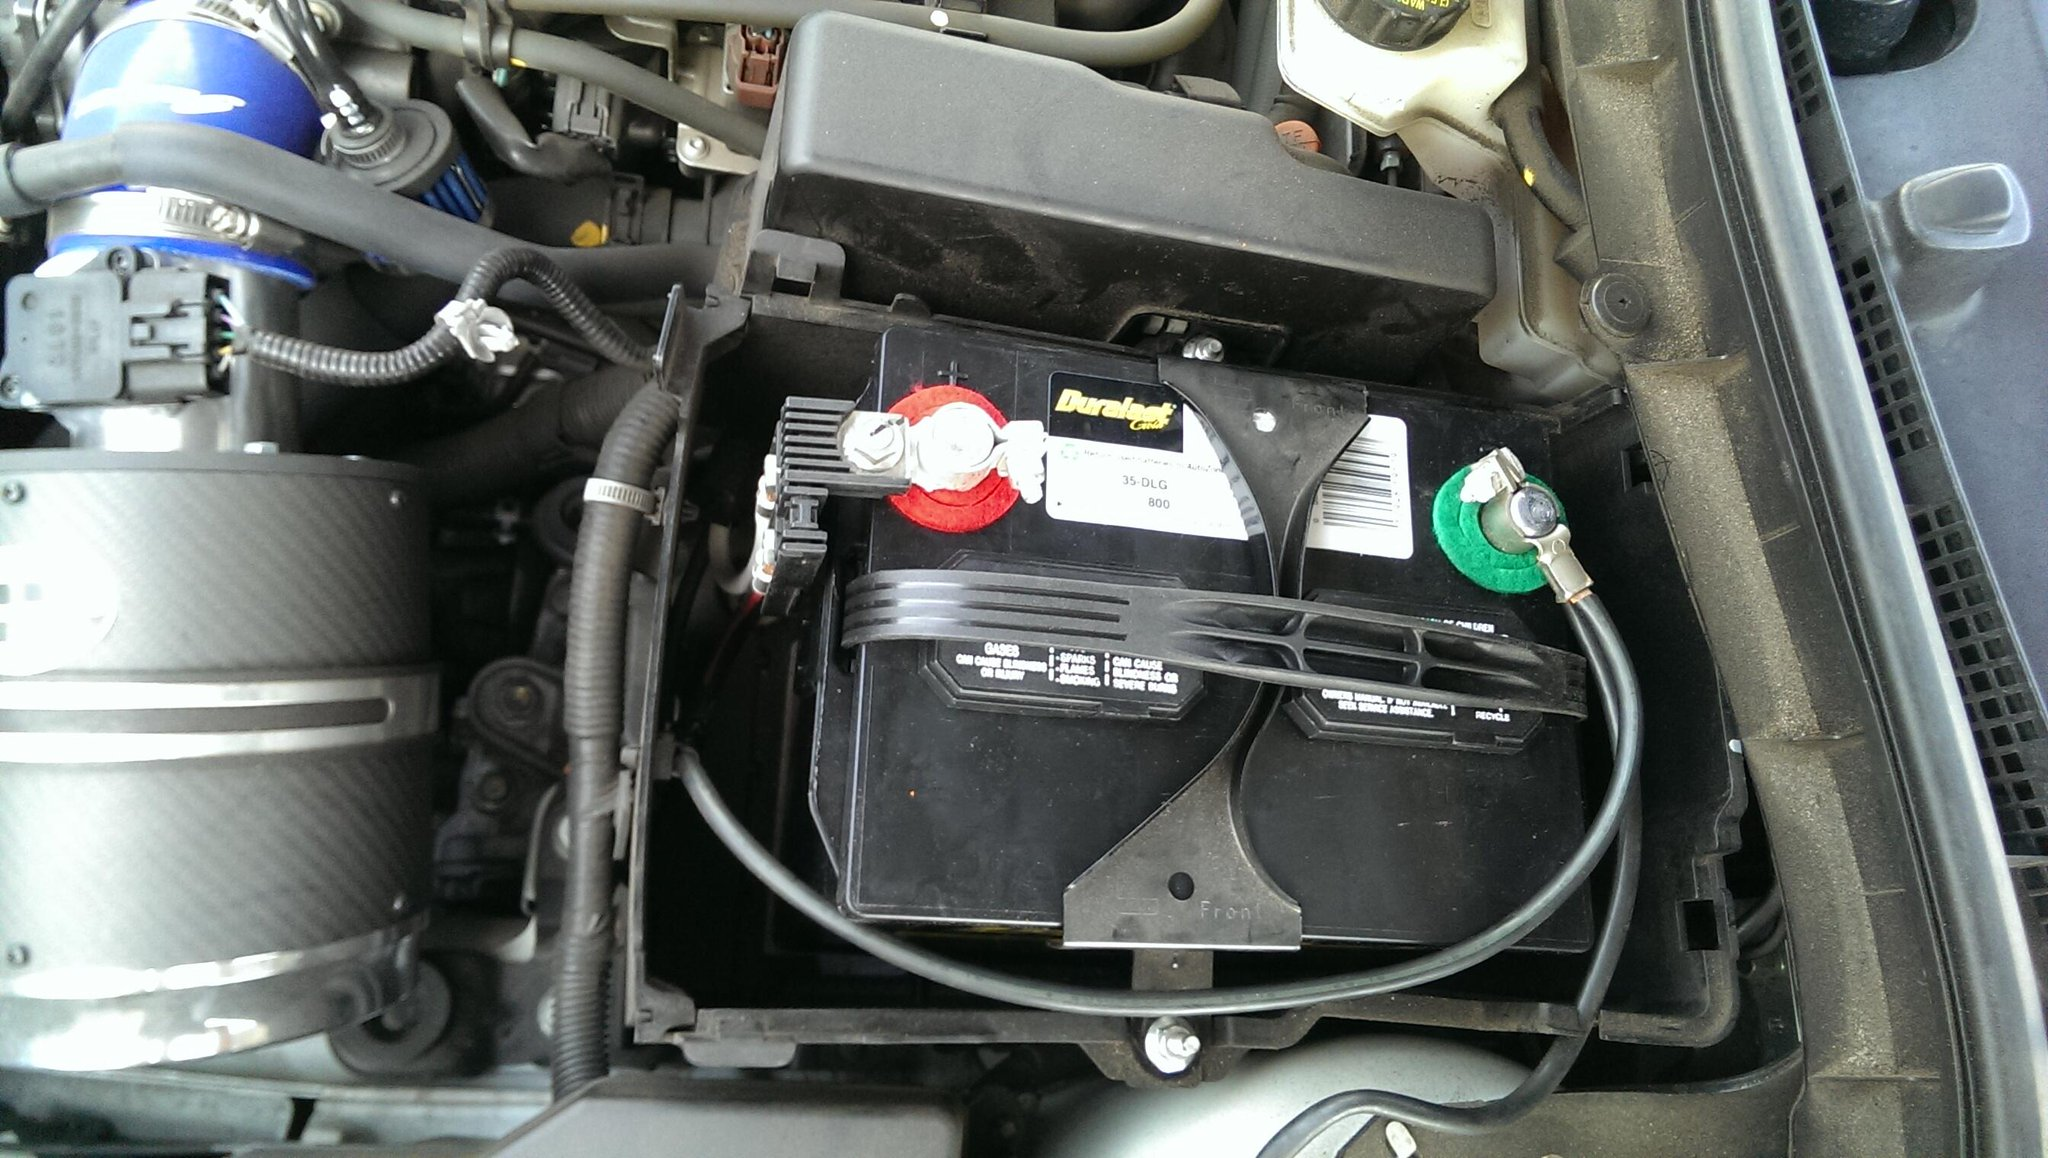 My Battery Keeps Dying Page 2 2004 To 2016 Mazda 3 Forum And Mazdasd Forums